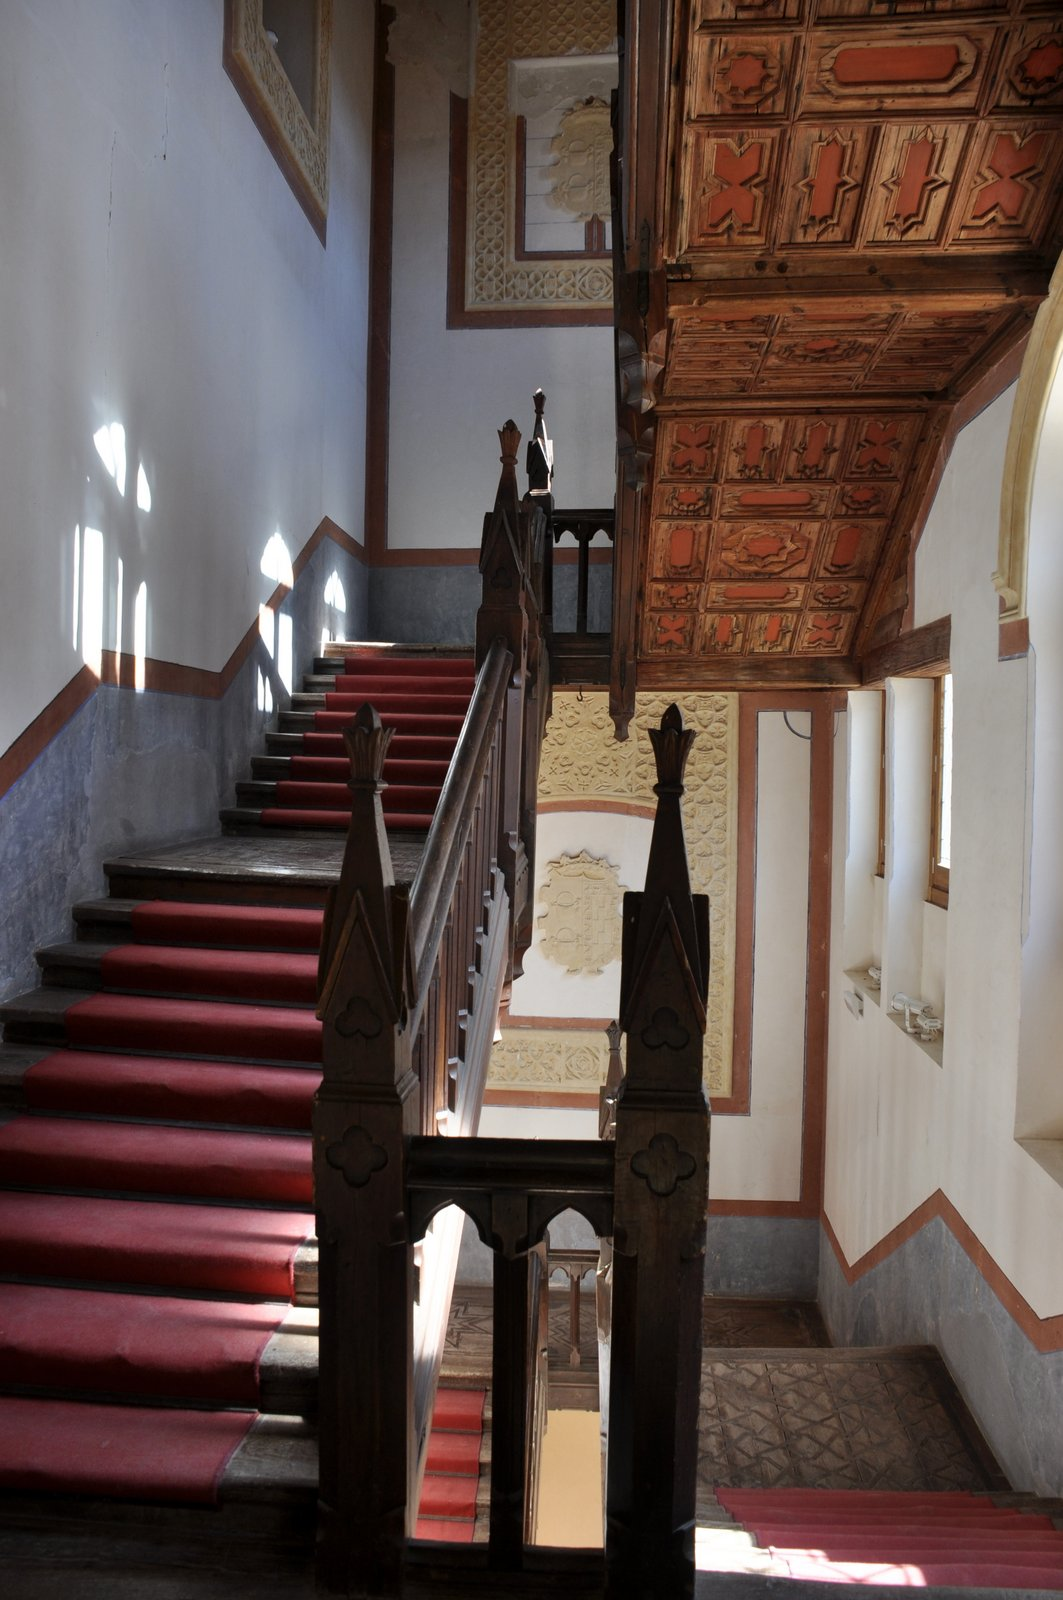 Escaleras interiores